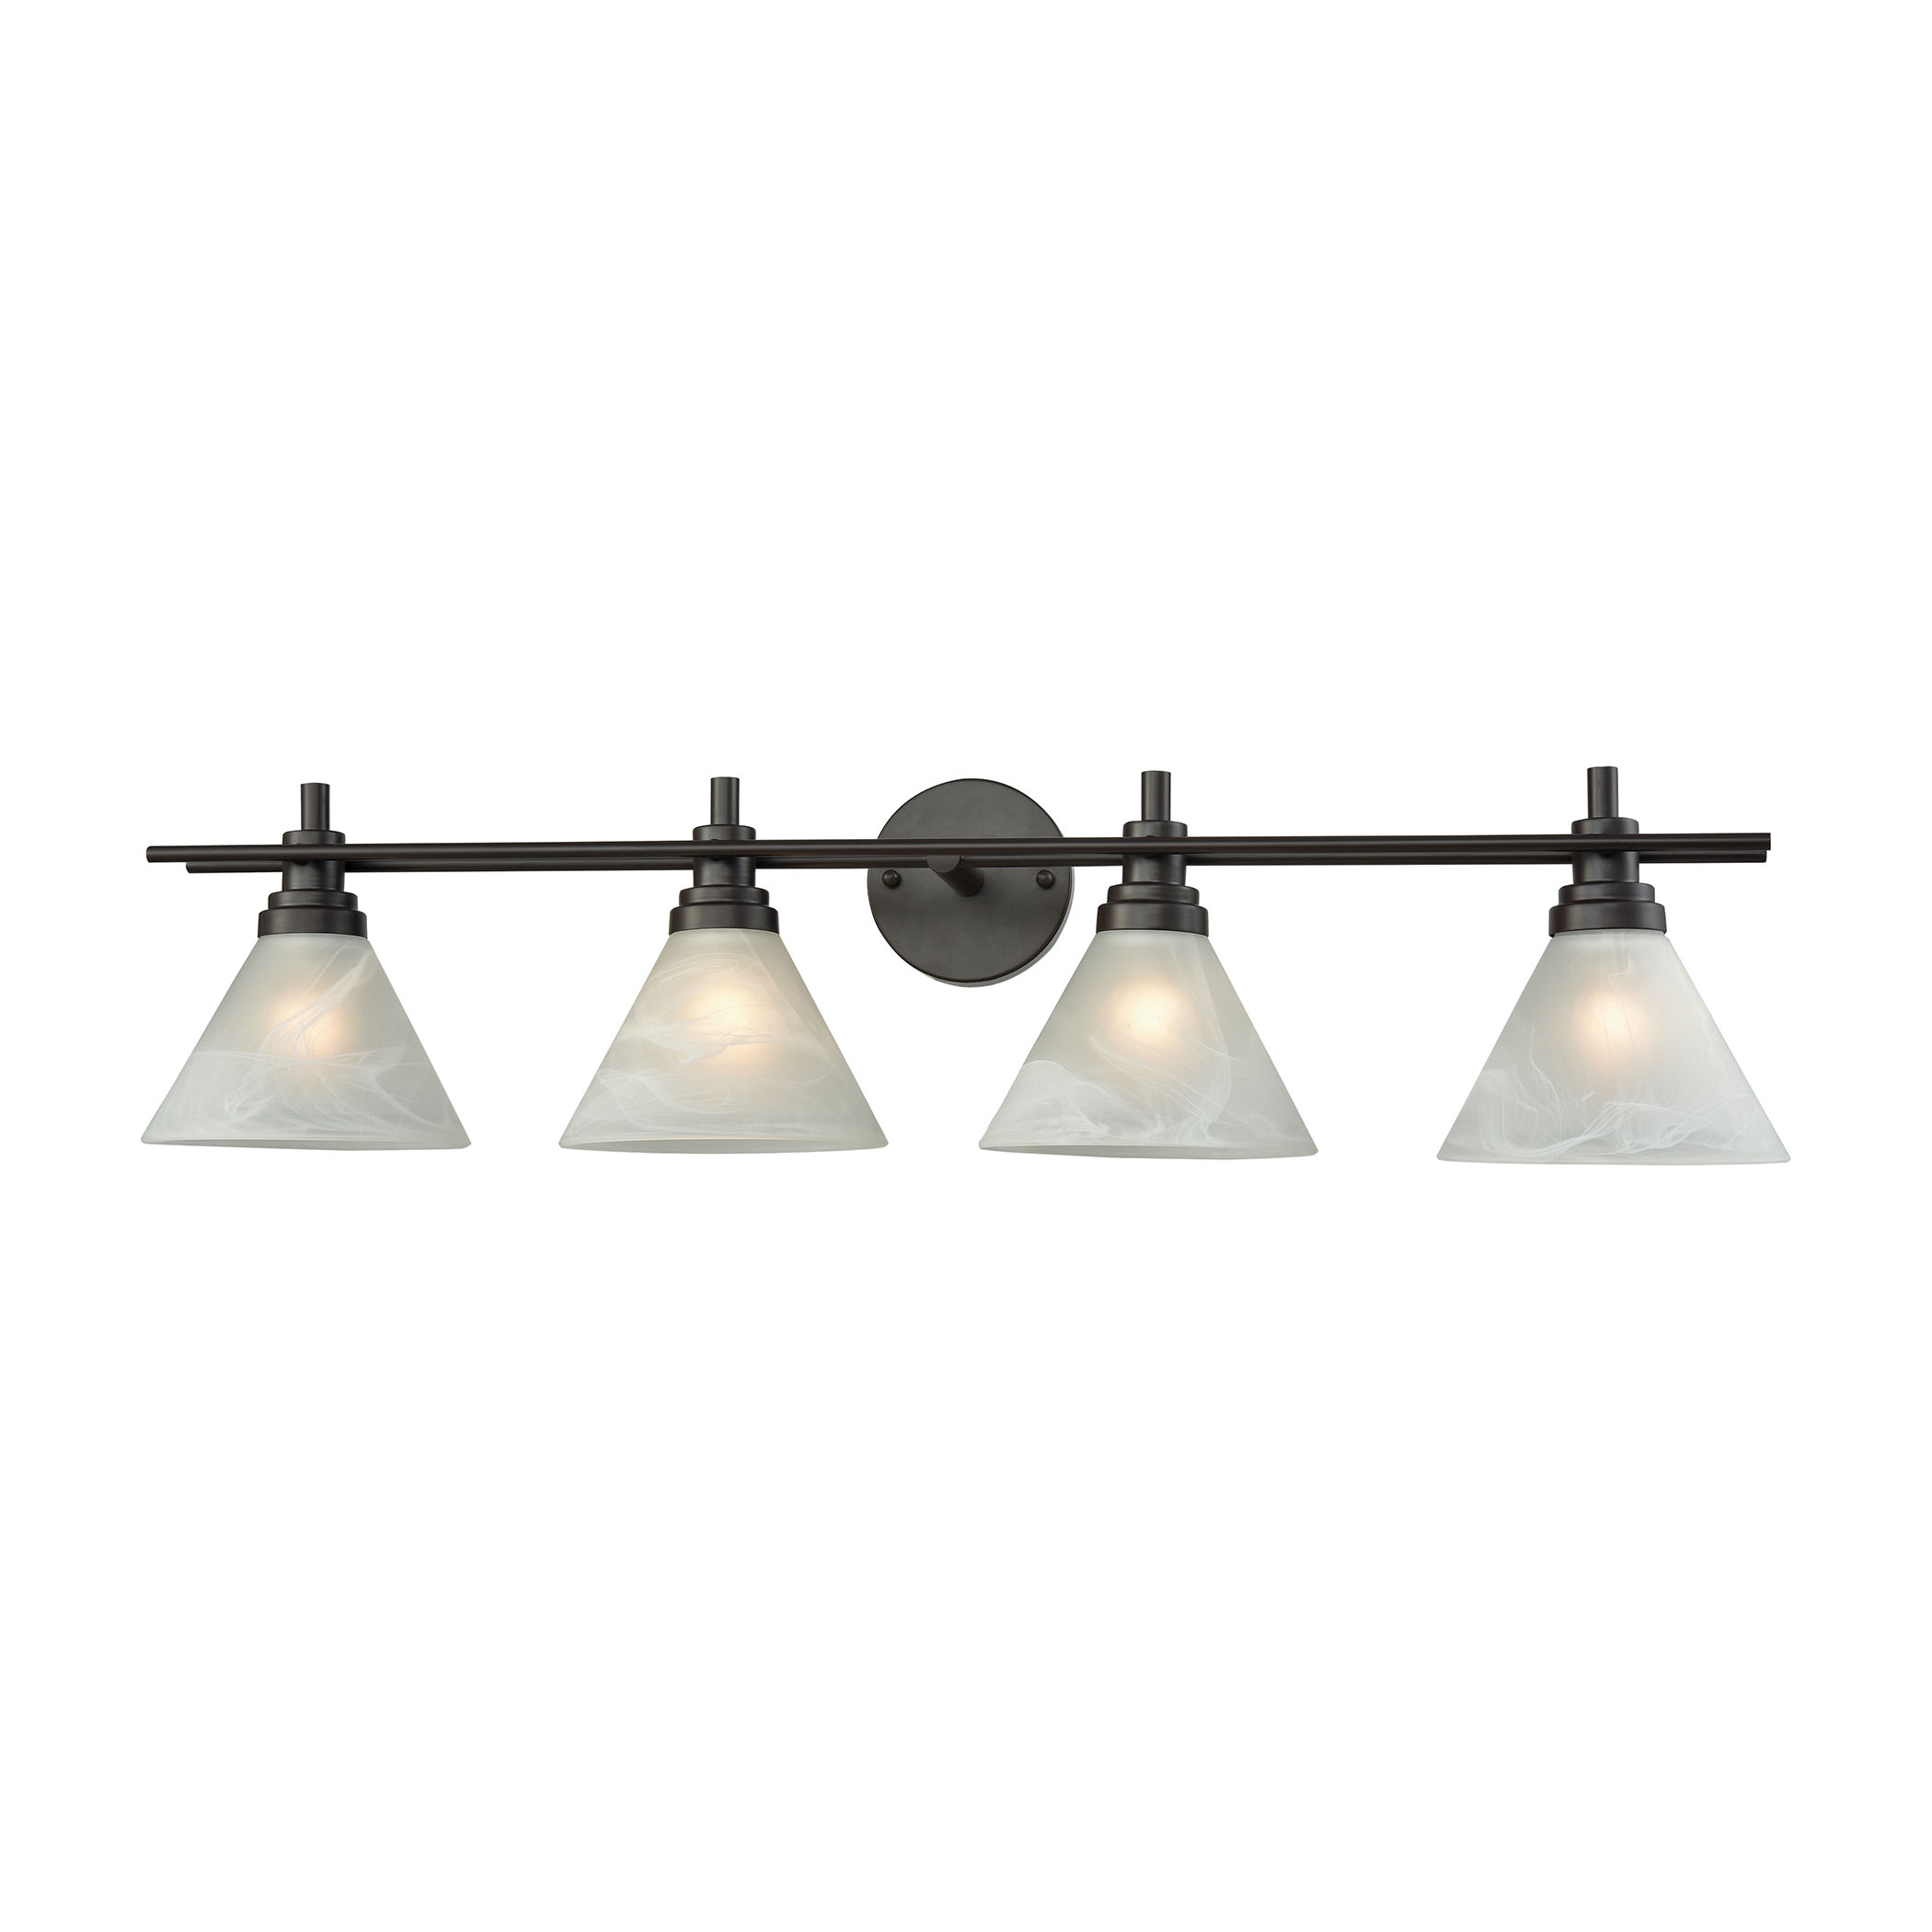 Pemberton 4 Light Vanity in Oil Rubbed Bronze with White Marbleized Glass